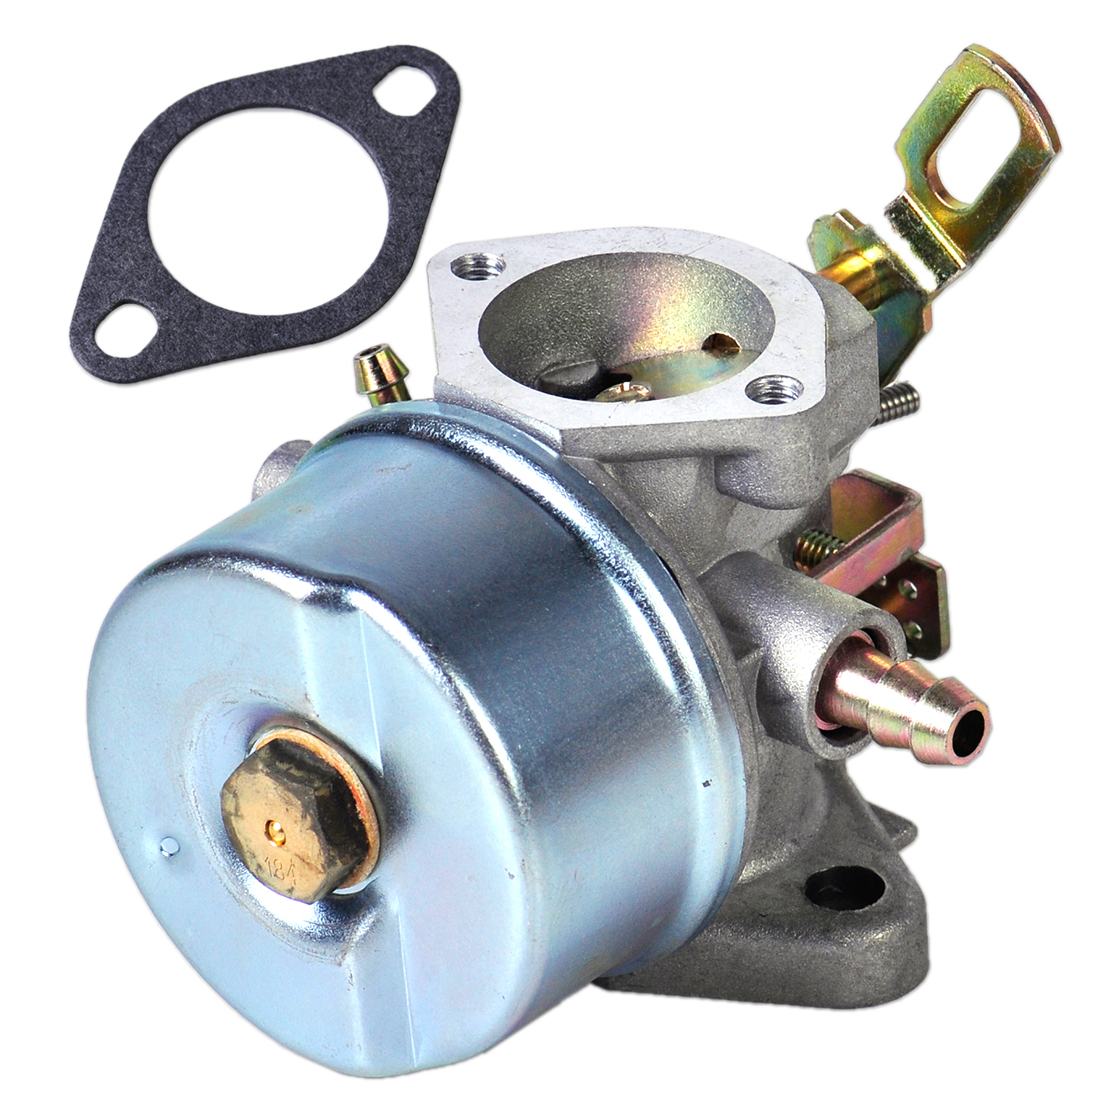 Letaosk New Fuel Tank Filter Joint Kit Accessories Fit For Honda Have A Snow Blower With Tecumseh 85 Hp Model Lh318sa Carburetor Carb W Gasket 8hp 9hp 10hp Hmsk80 Hmsk90 Lh358sa